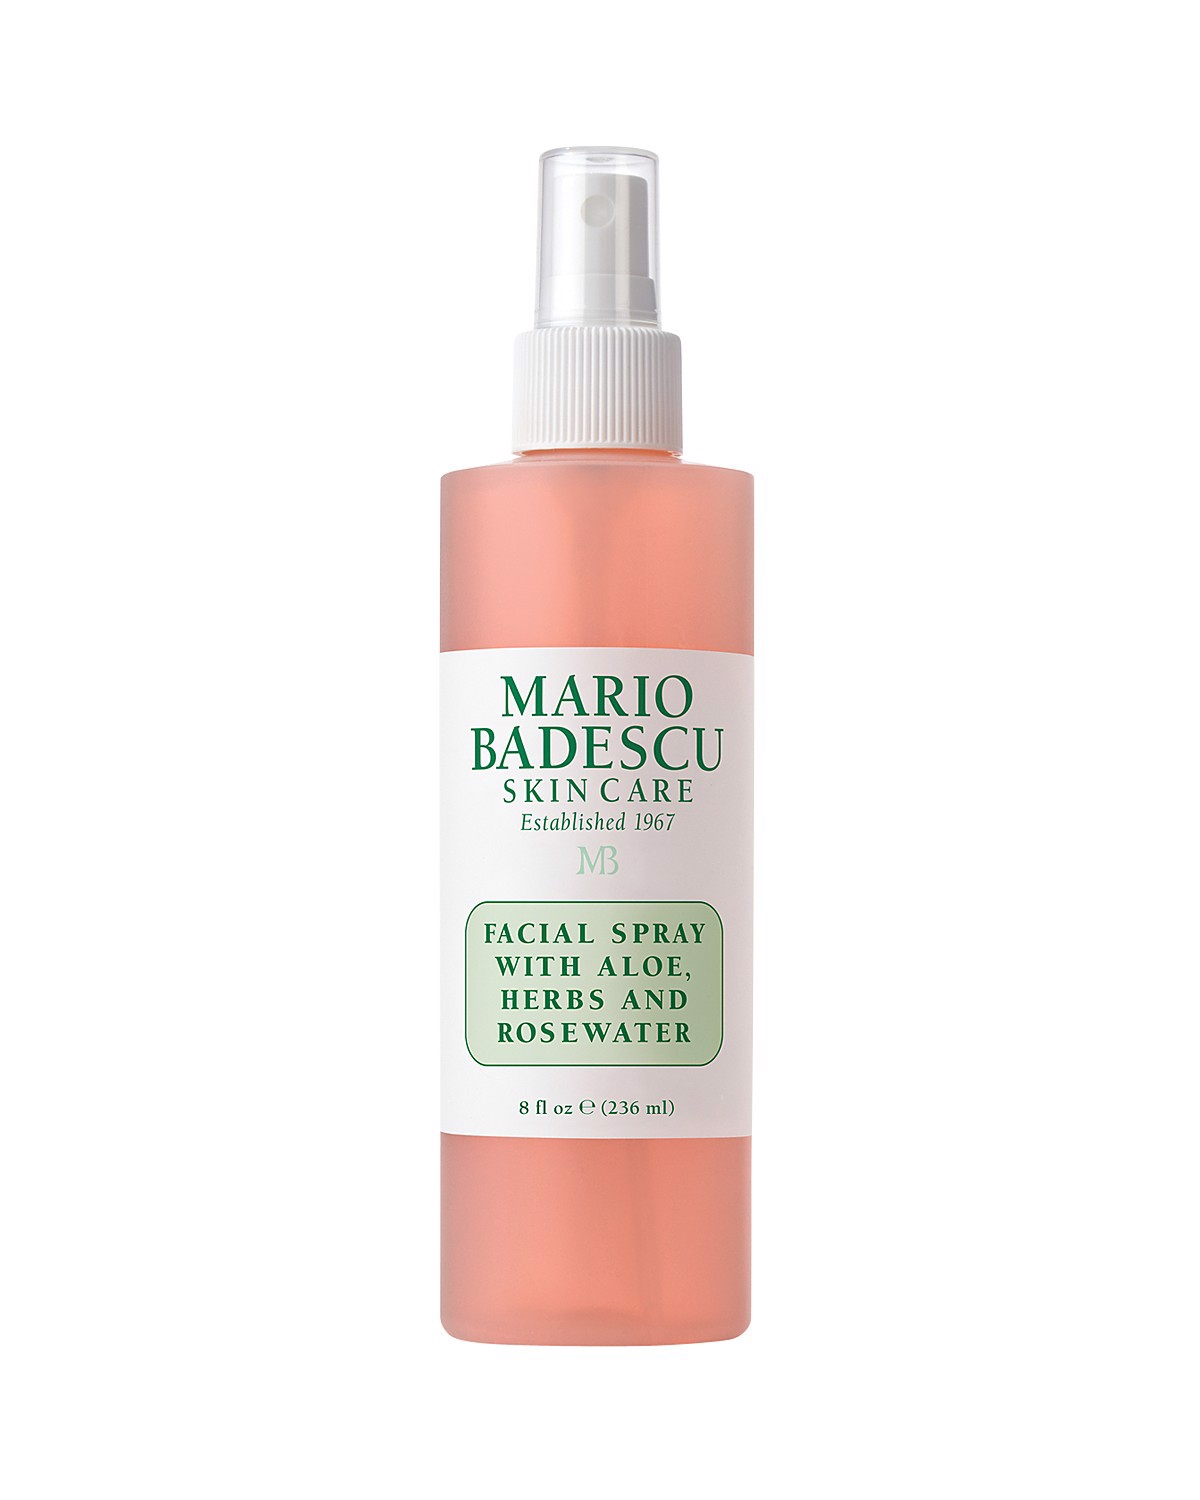 Xịt khoáng Mario Badescu Facial Spray With Aloe, Herbs And Rose Water 236ml